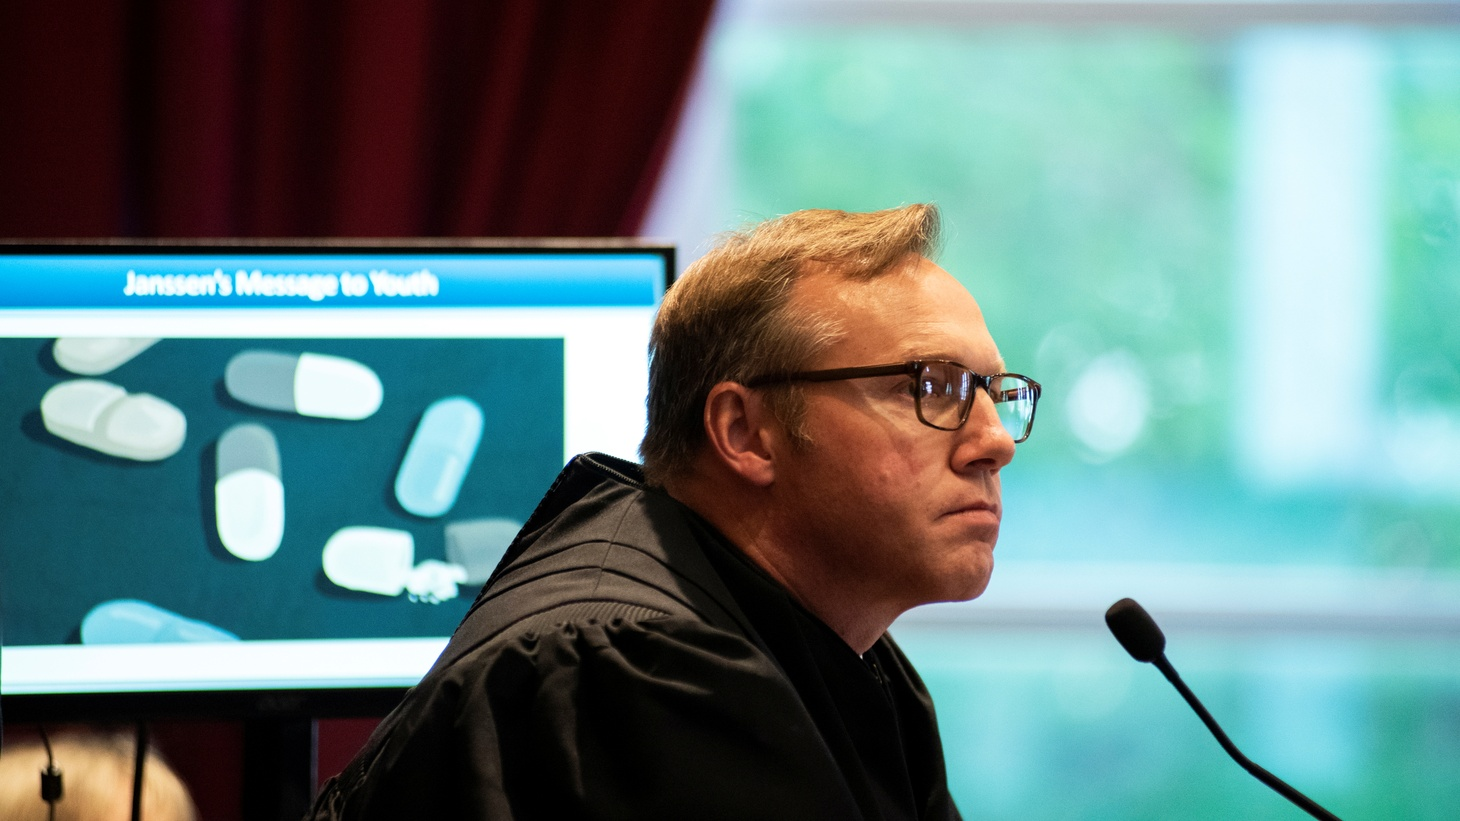 Judge Thad Balkman watches a video on the first day of a trial accusing Johnson & Johnson of engaging in deceptive marketing that contributed to the national opioid epidemic in Norman, Oklahoma, U.S. May 28, 2019.